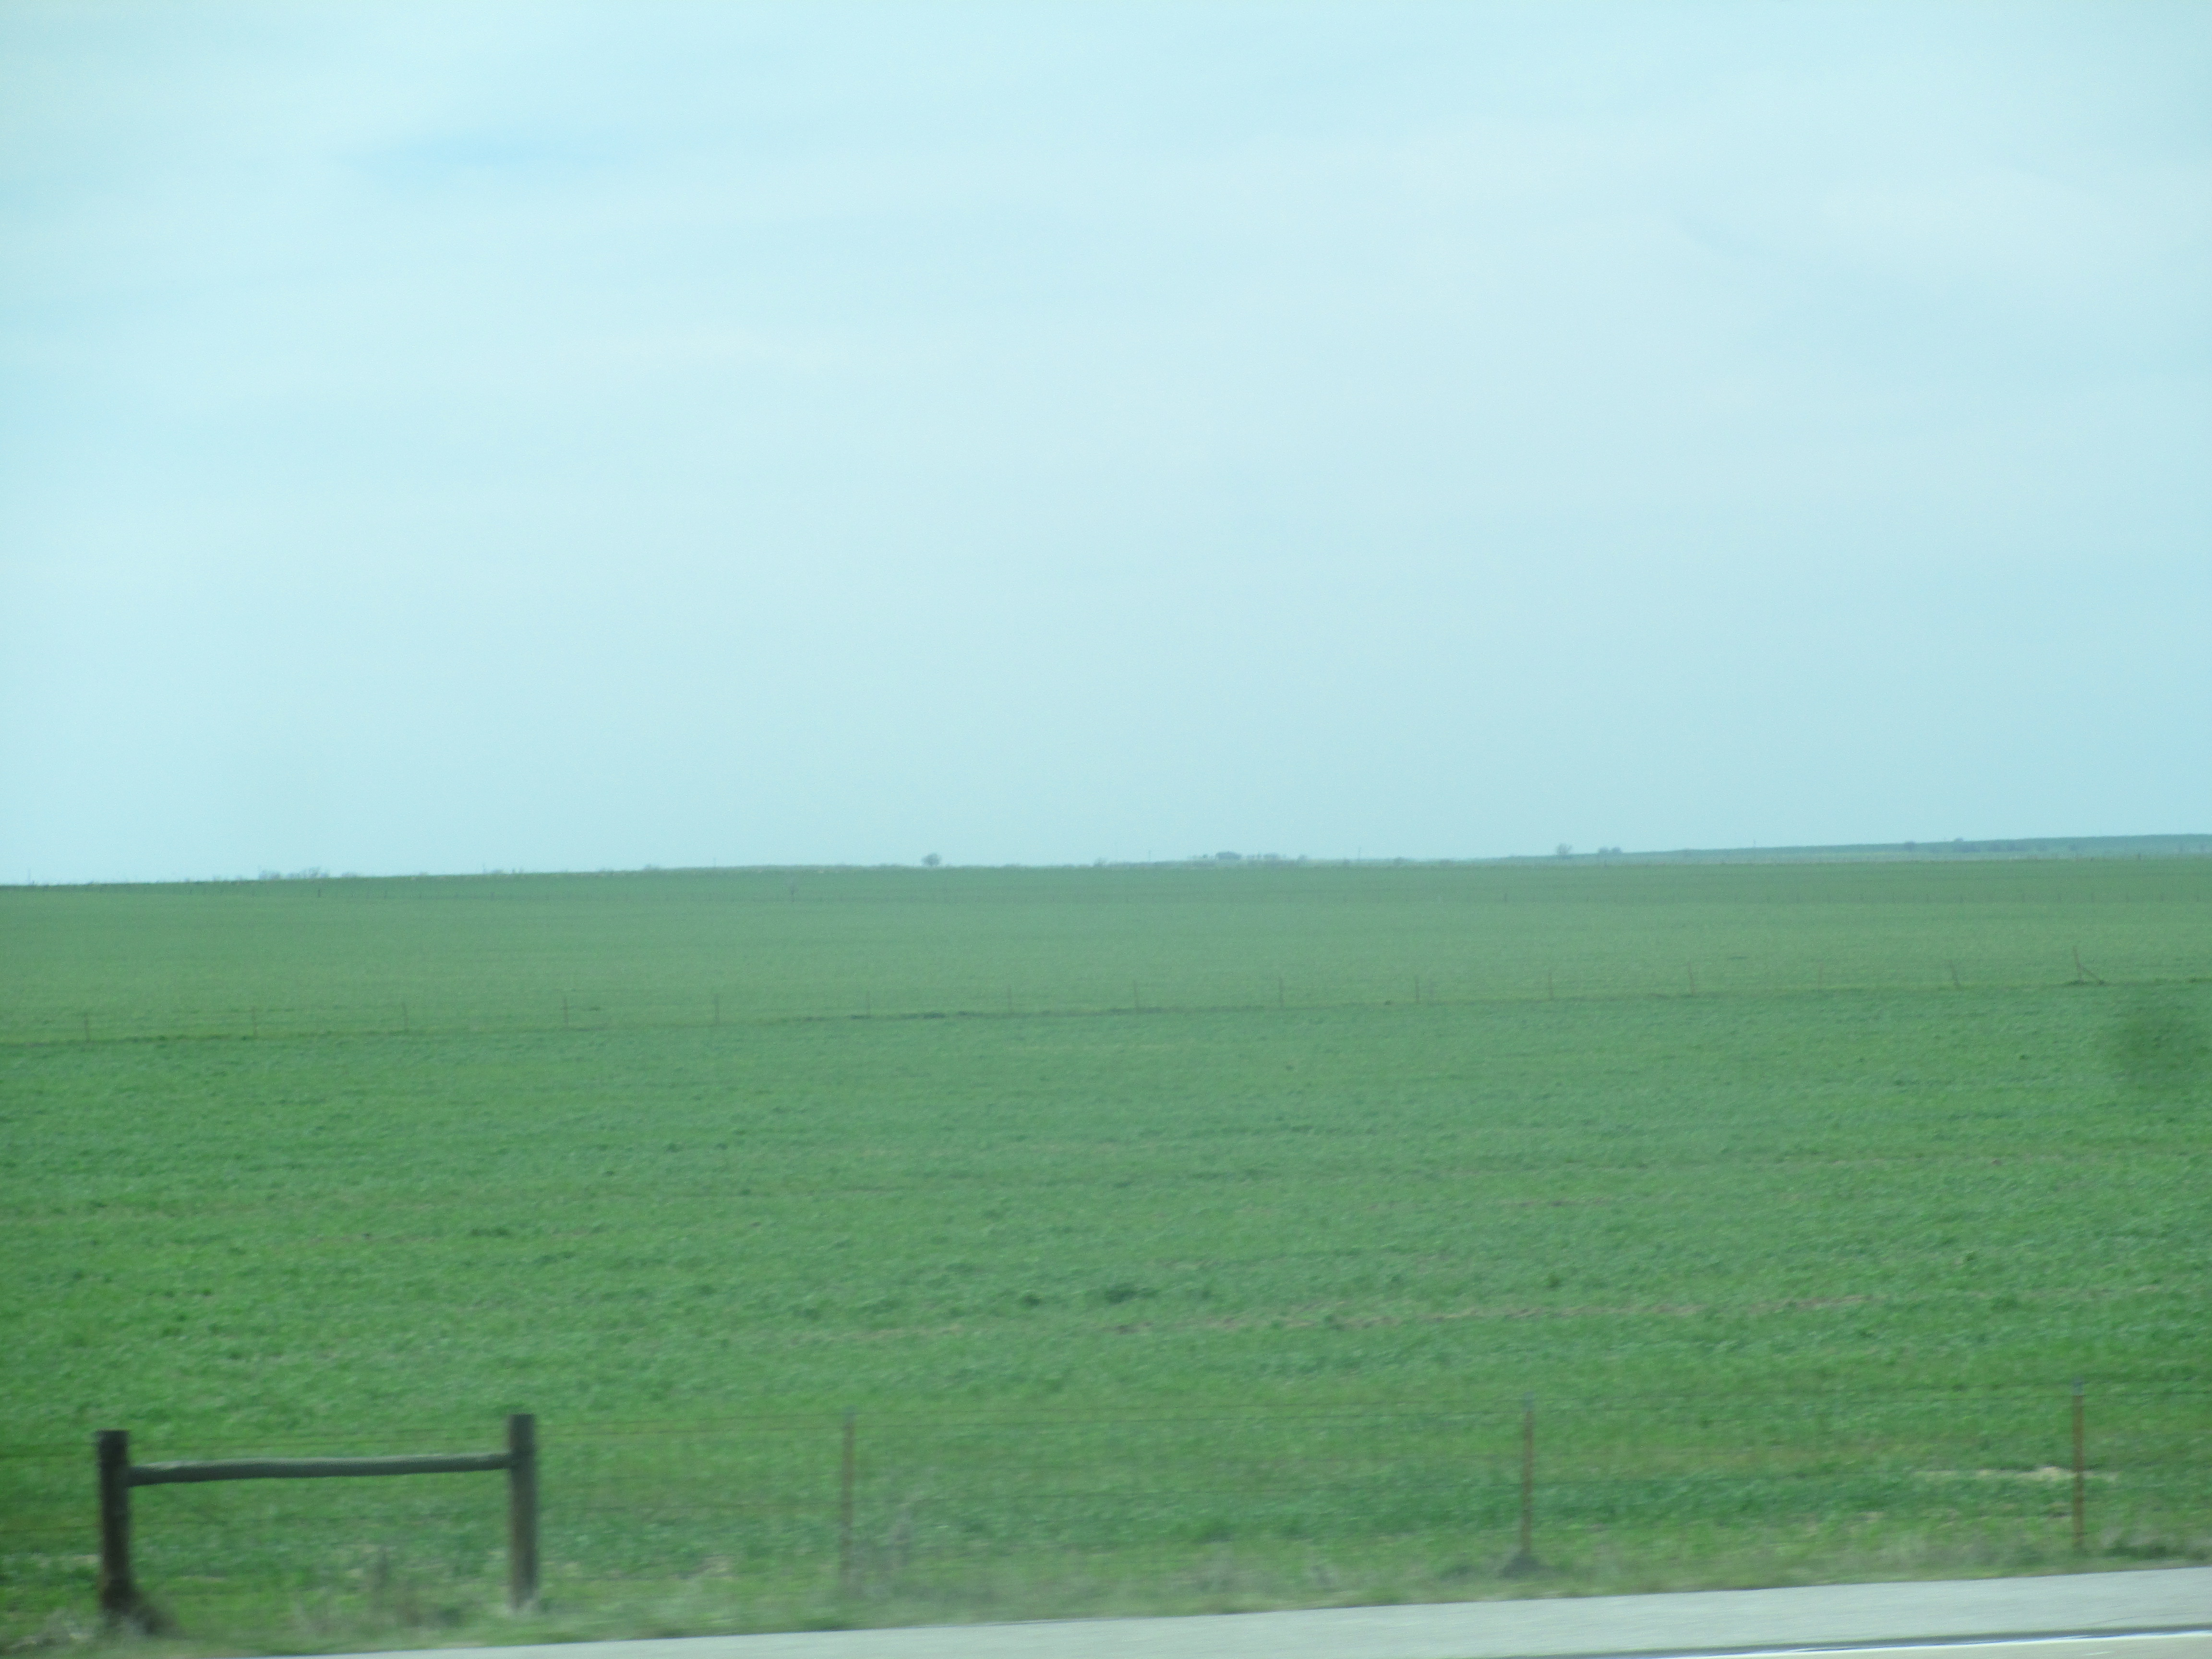 file southern great plains in oklahoma img 6980 jpg wikimedia commons